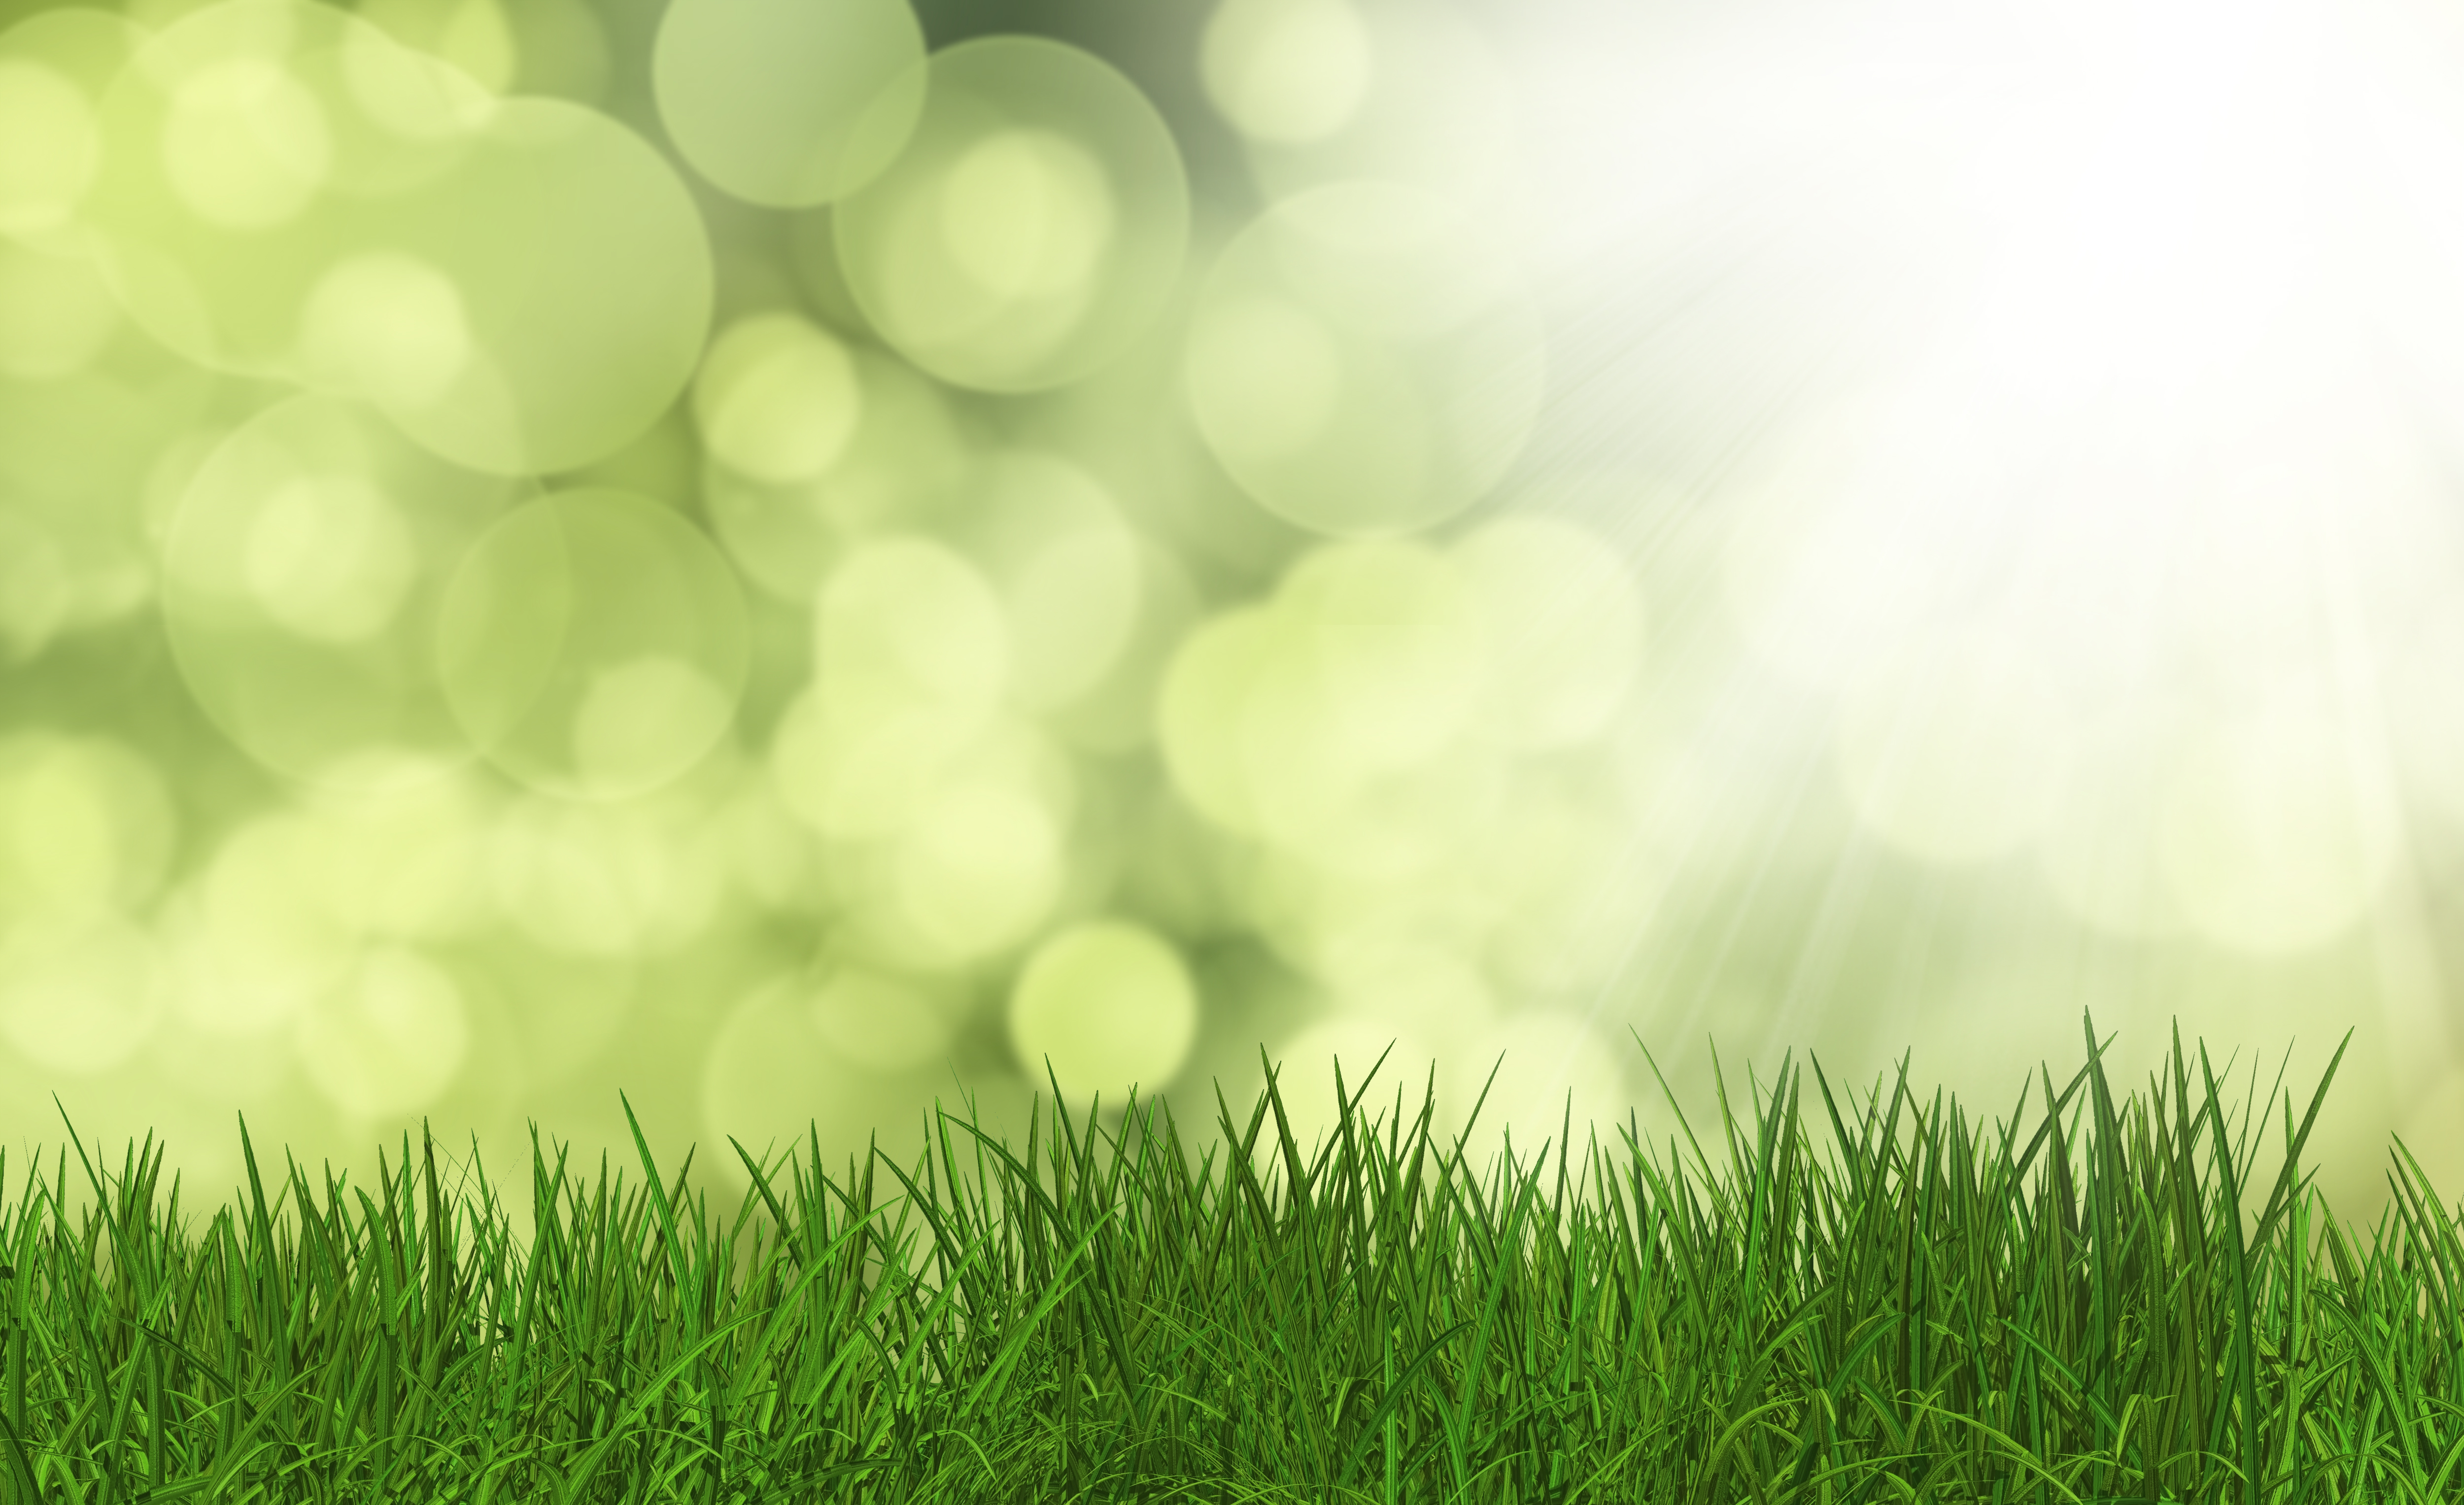 3D render of lush green grass on a defocussed background